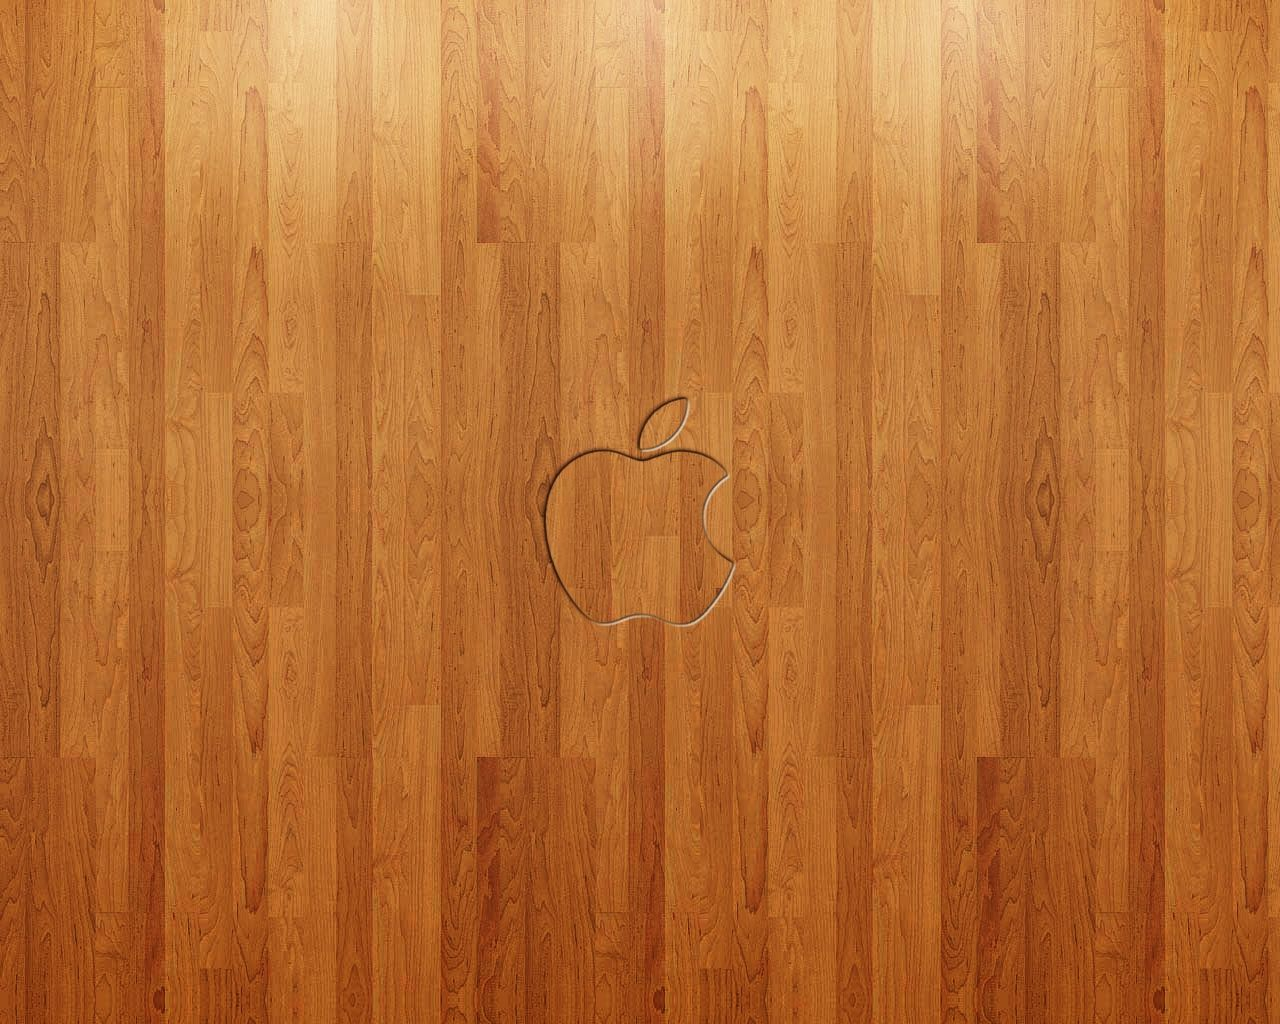 Wood wallpapers 35 wood images and wallpapers for macbook